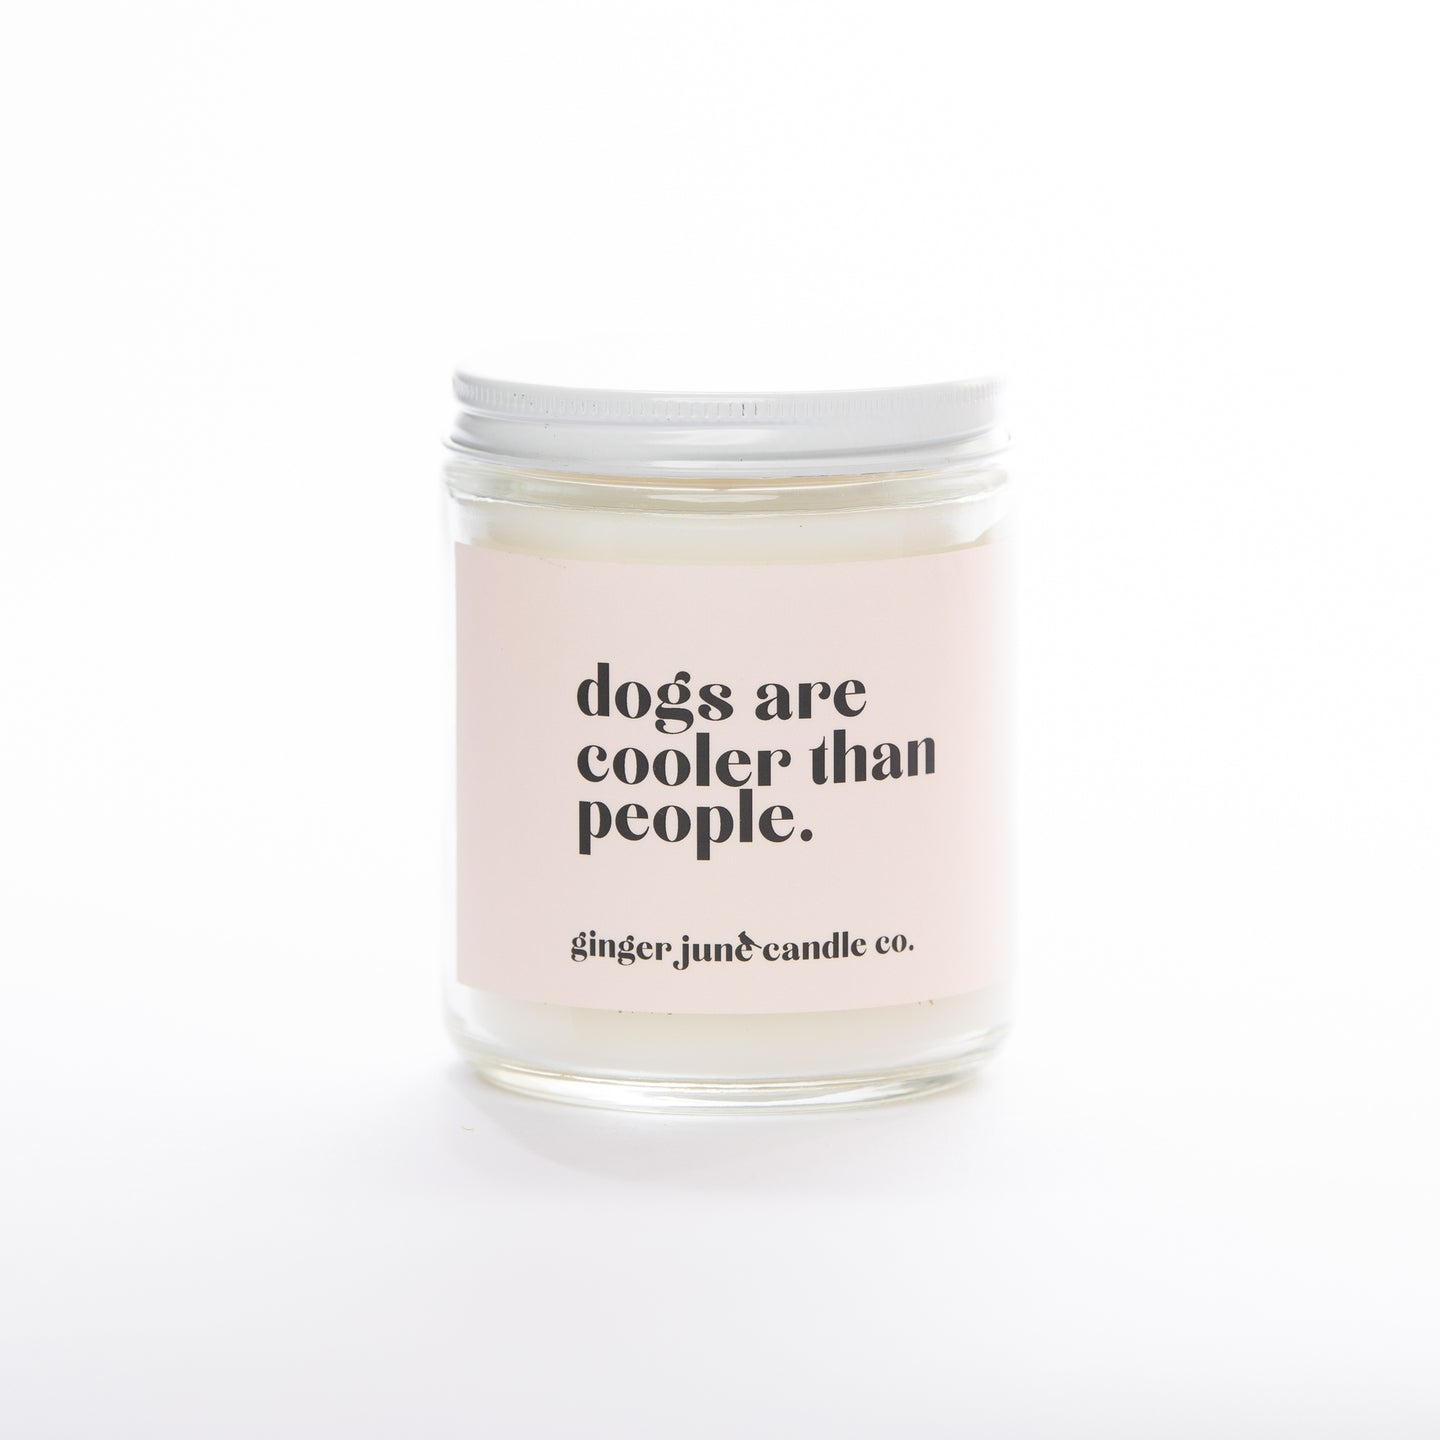 Dog Are Cooler Than People - 9oz Soy Candle